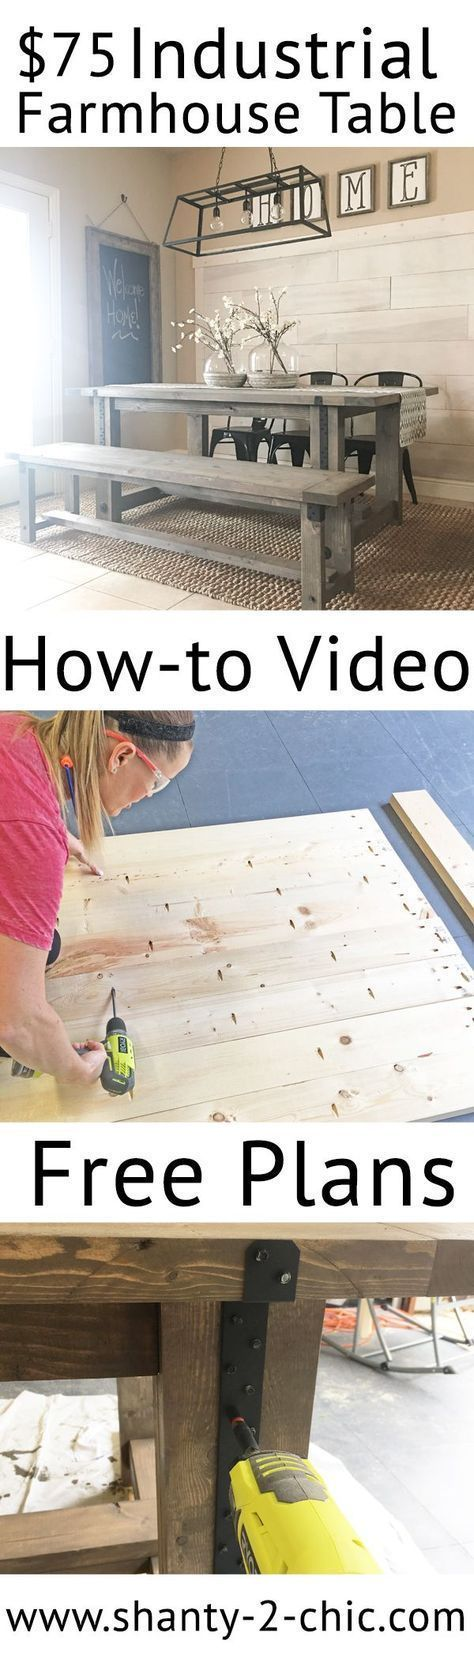 Build this Industrial Farmhouse Table with only framing materials! How-to video and free plans at http://www.shanty-2-chic.com #industrialfurniture